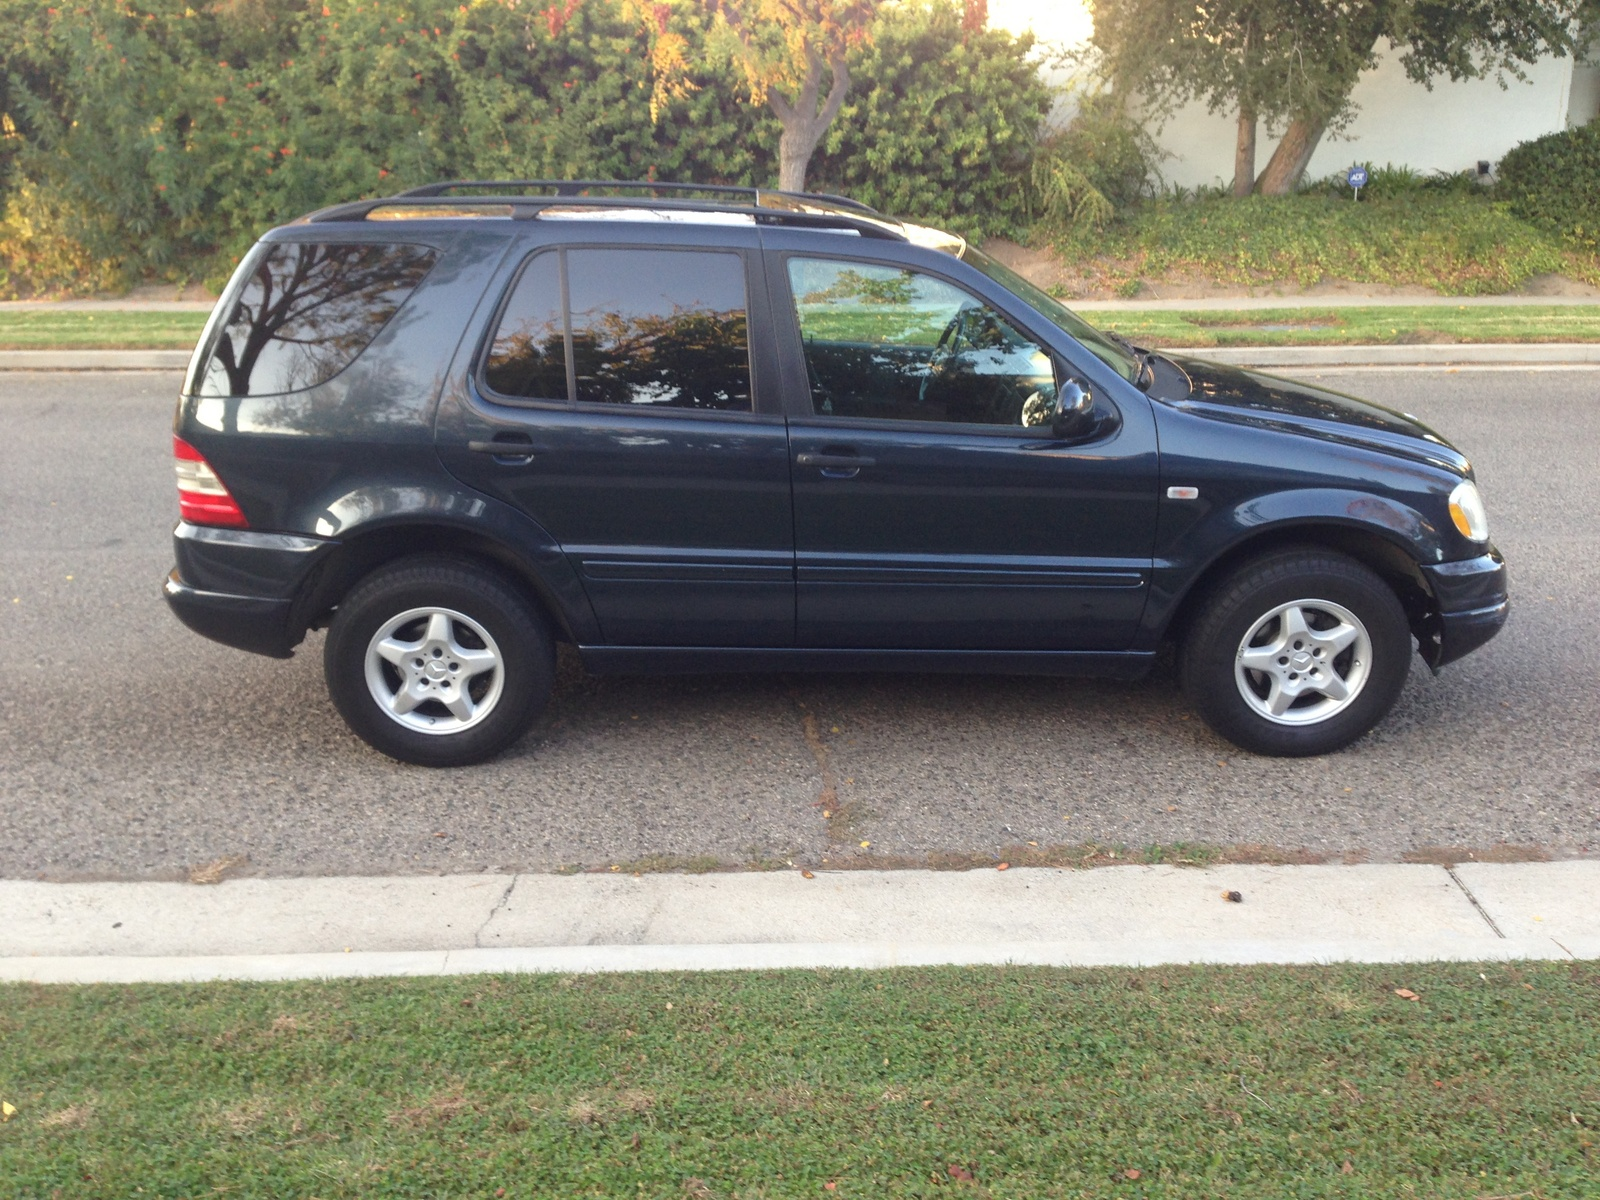 Mercedes benz ml 250 owners manual gfgett for 2000 mercedes benz ml320 owners manual